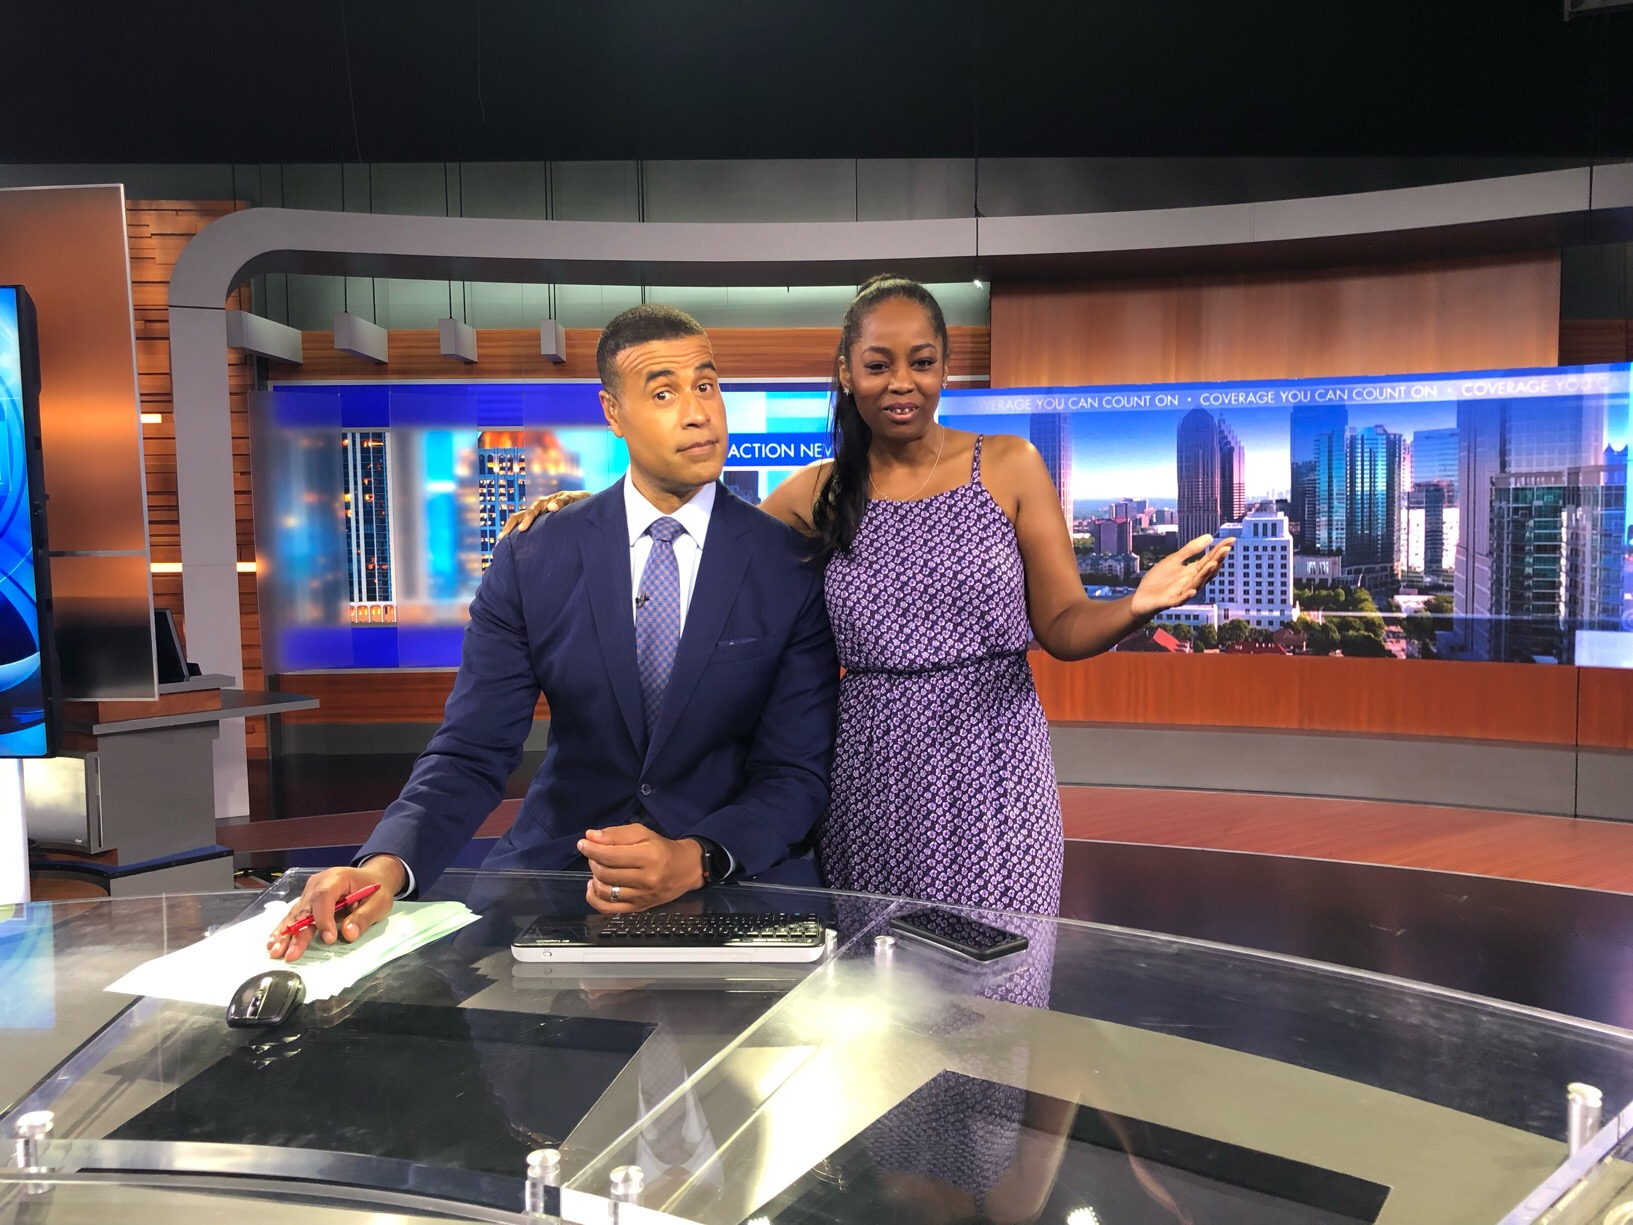 WSB-TV Back 2 School Agenda, Meet & Greet, Panel Discussion And Luncheon